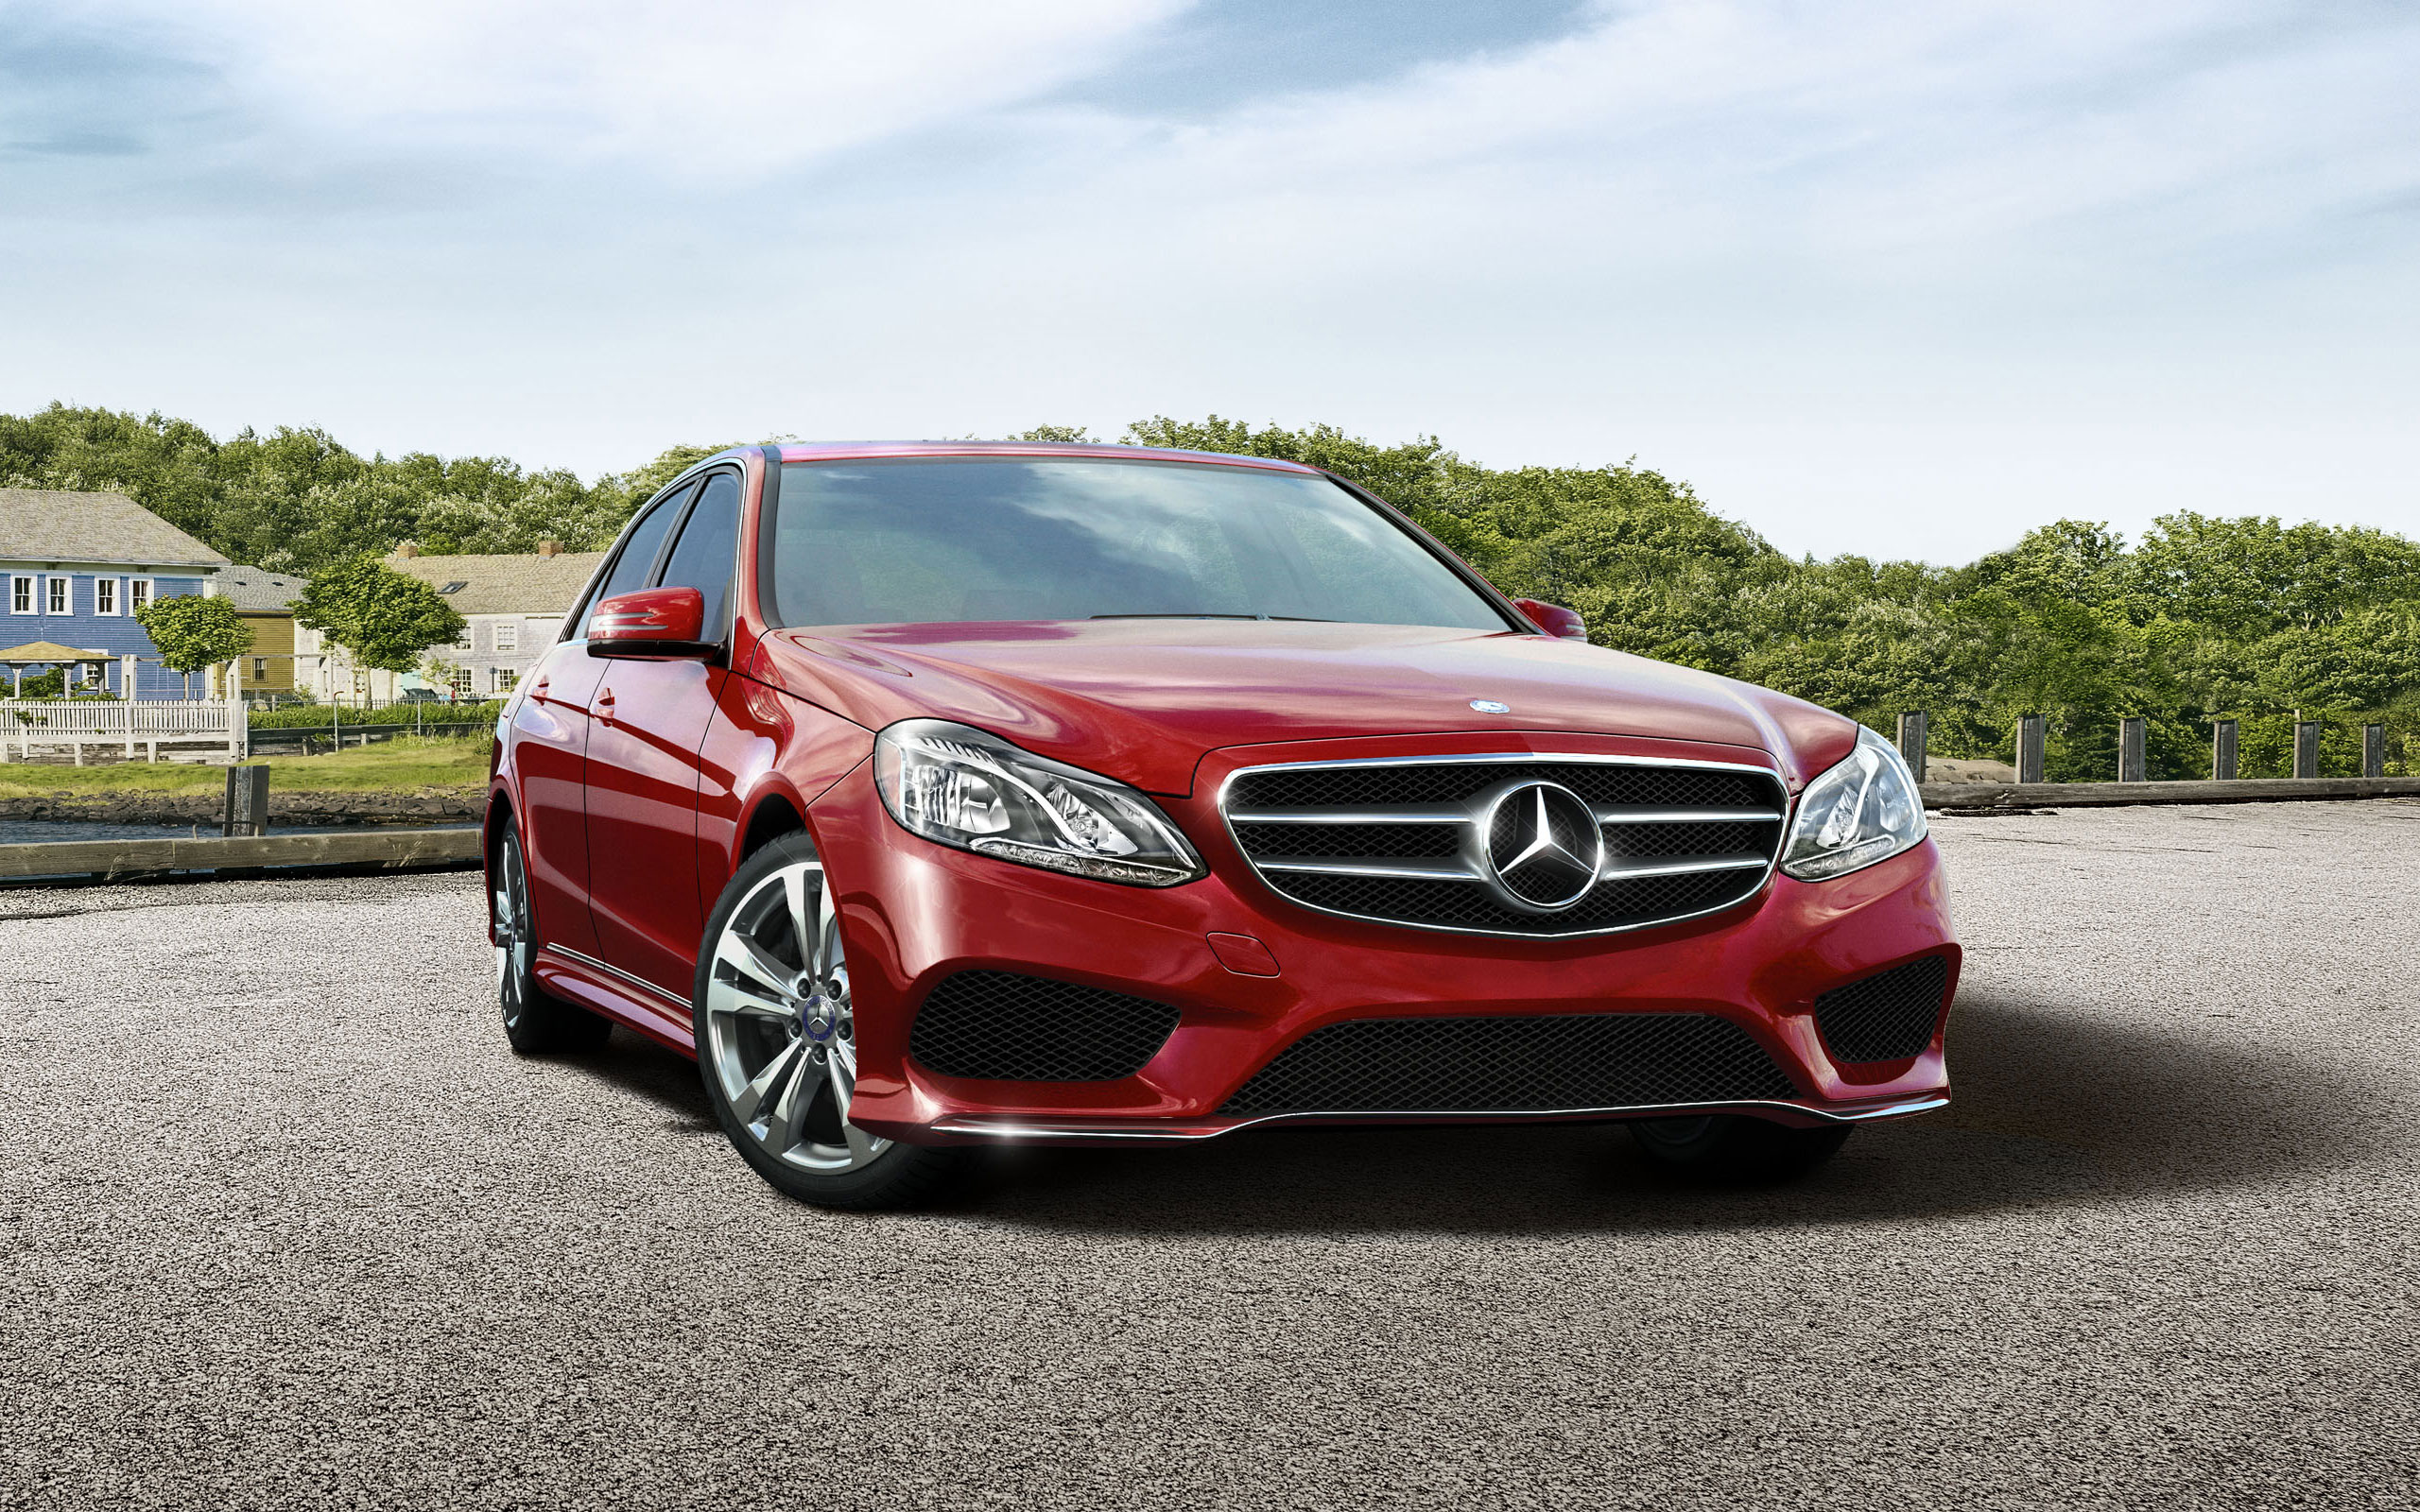 Showroom and tell the 2014 mercedes benz e550 4matic for 2014 mercedes benz e550 4matic